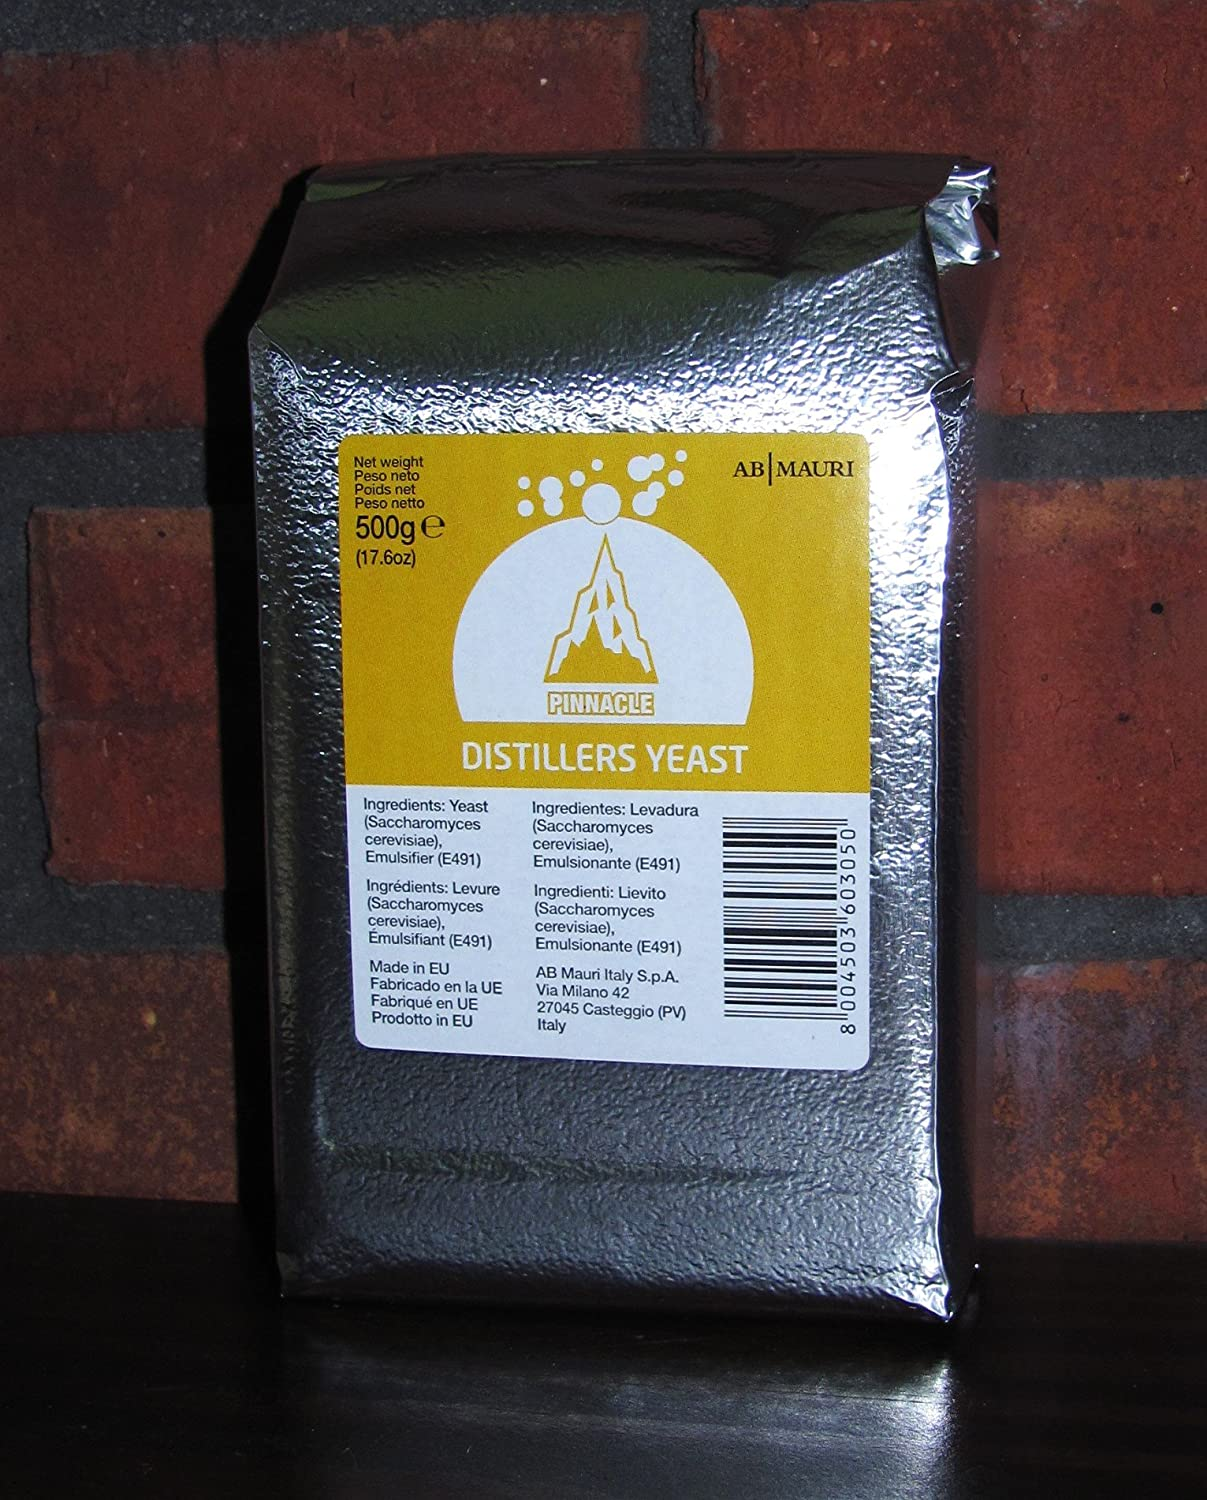 Amazon.com: PINNACLE DISTILLERS YEAST 500g BRICK FOR SCOTCH AND IRISH WHISKEYS: Industrial & Scientific